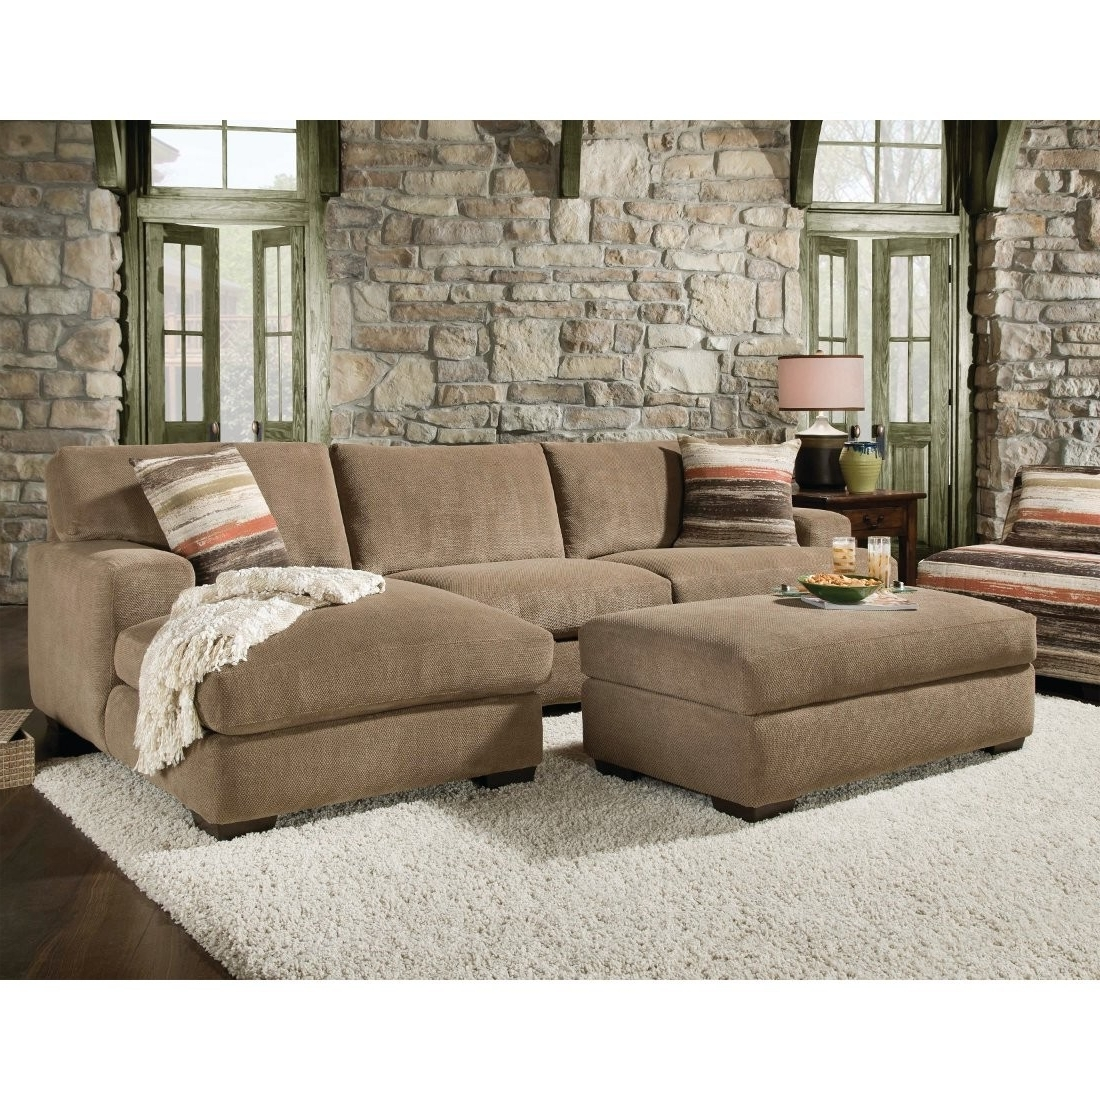 2018 Brown Sectionals With Chaise For Beautiful Sectional Sofa With Chaise And Ottoman Pictures (View 2 of 15)